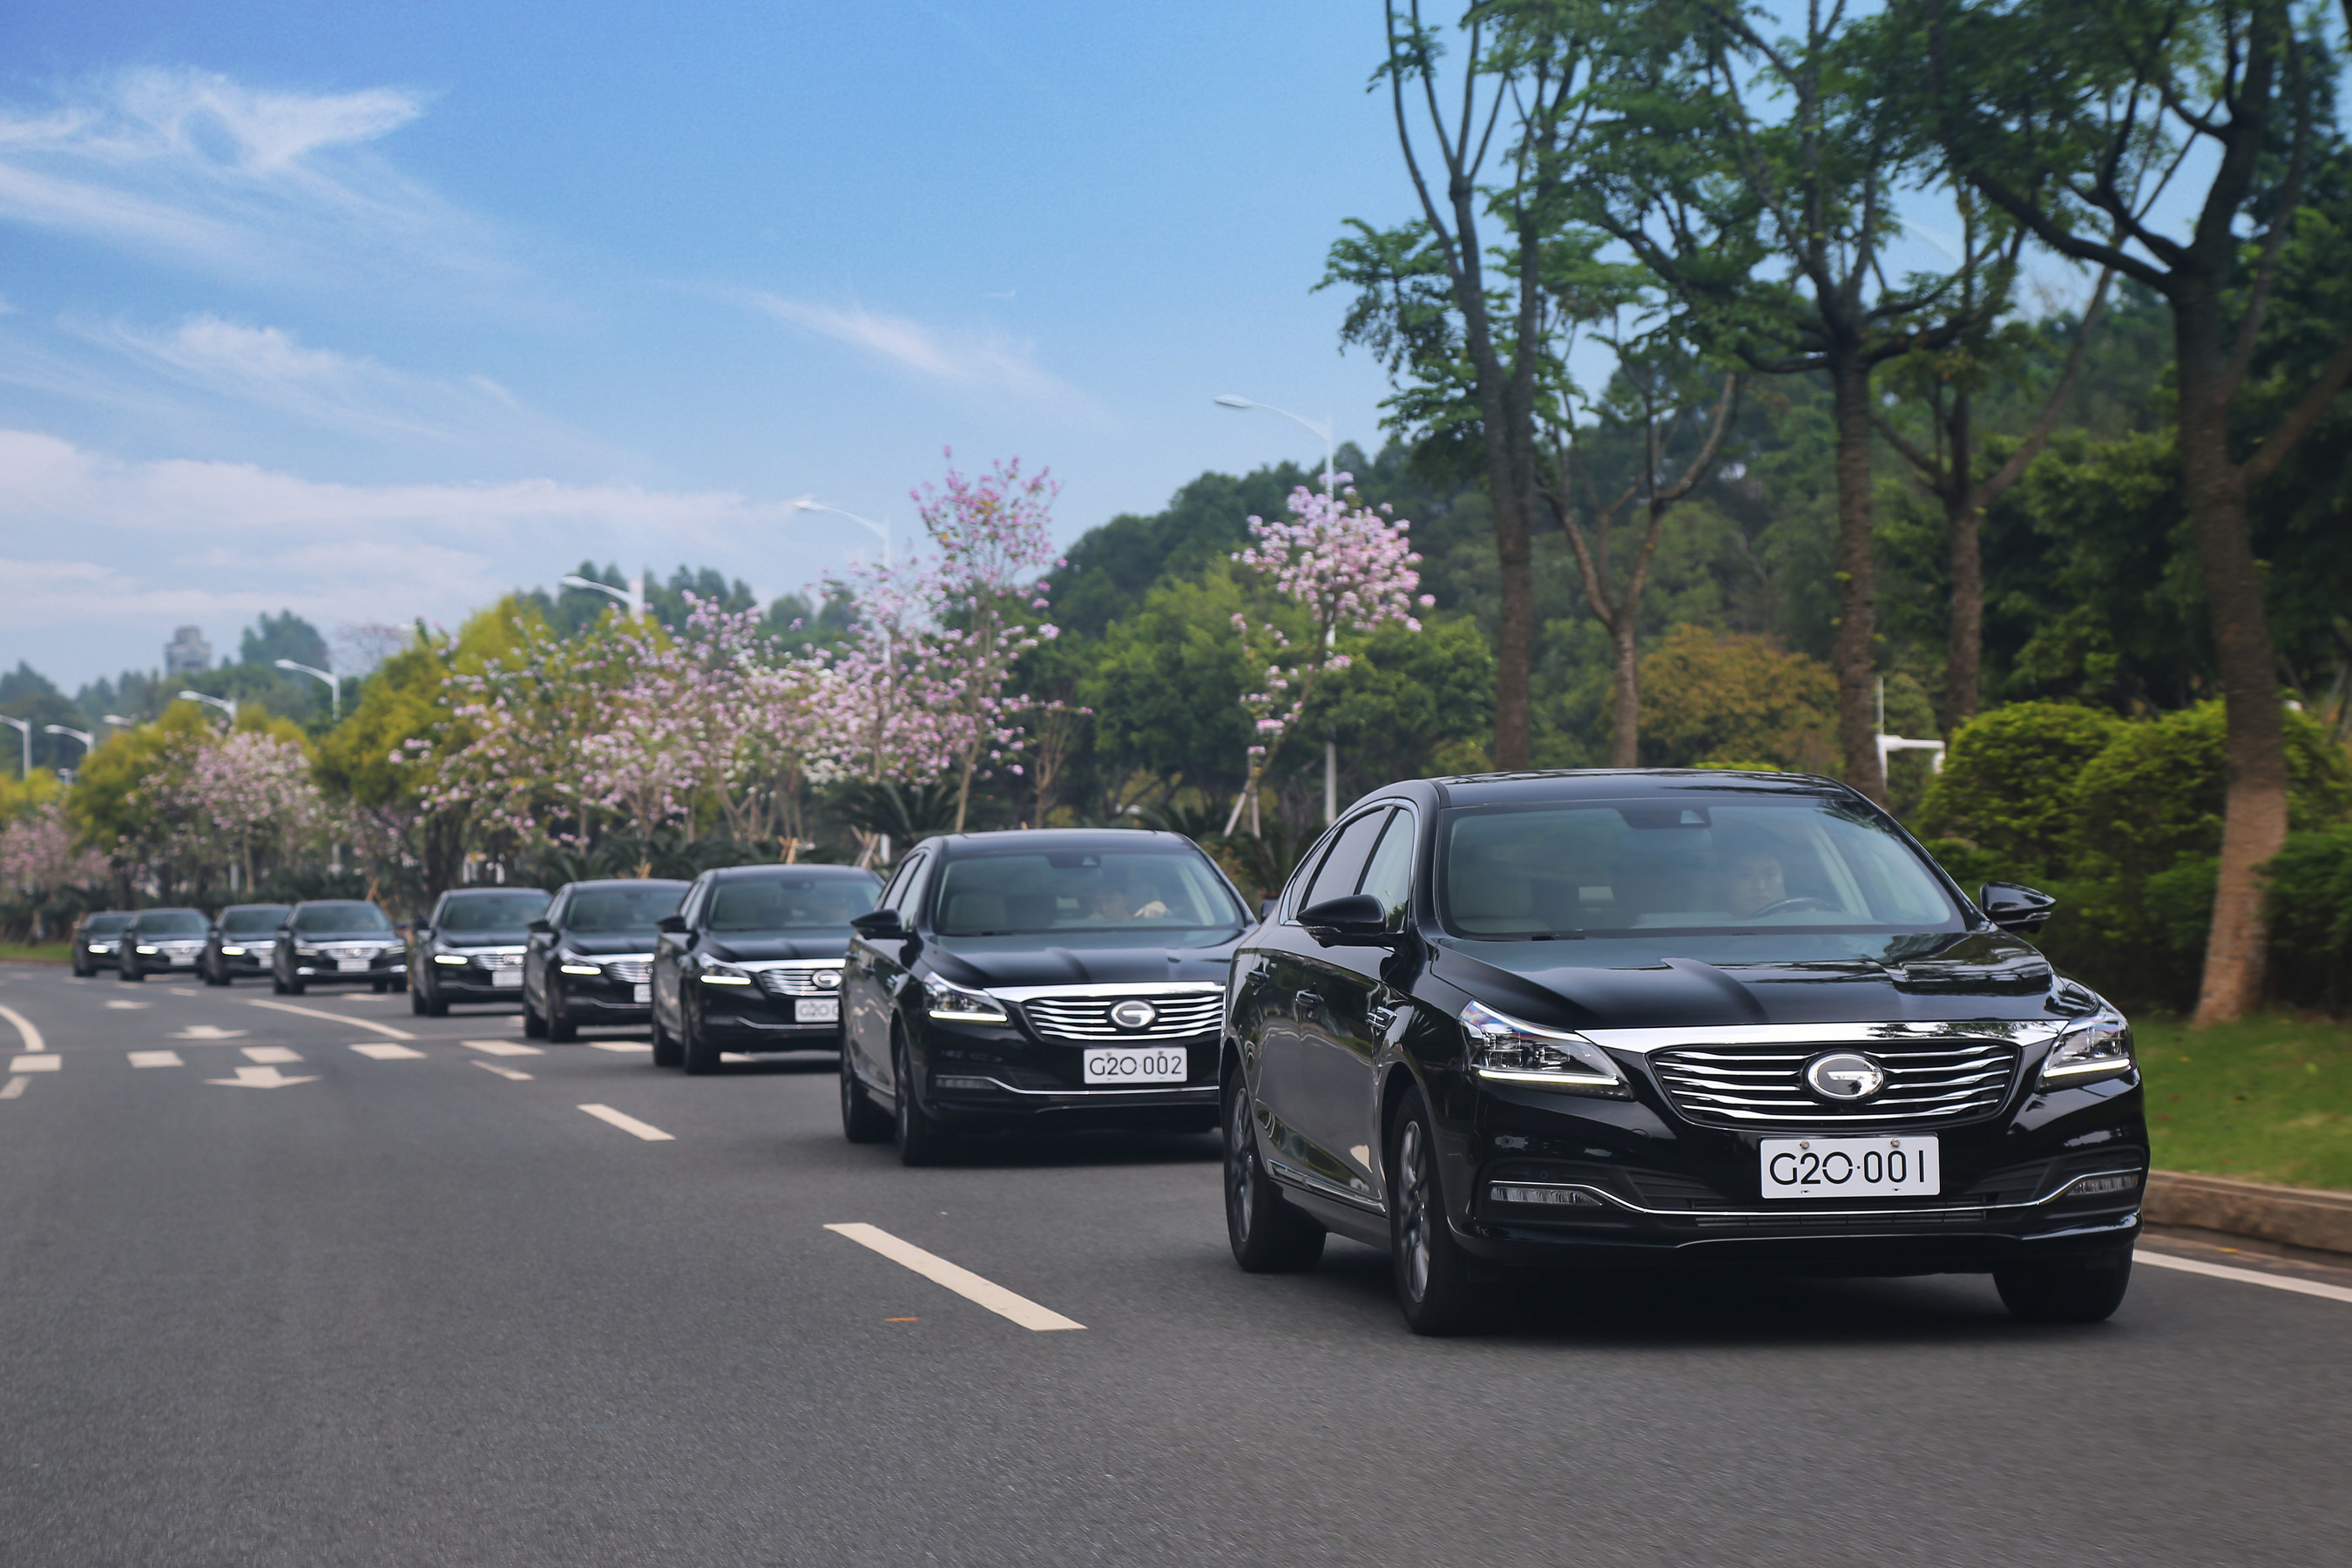 40 GA8 sedans were provided as designated service cars for the G20 summit